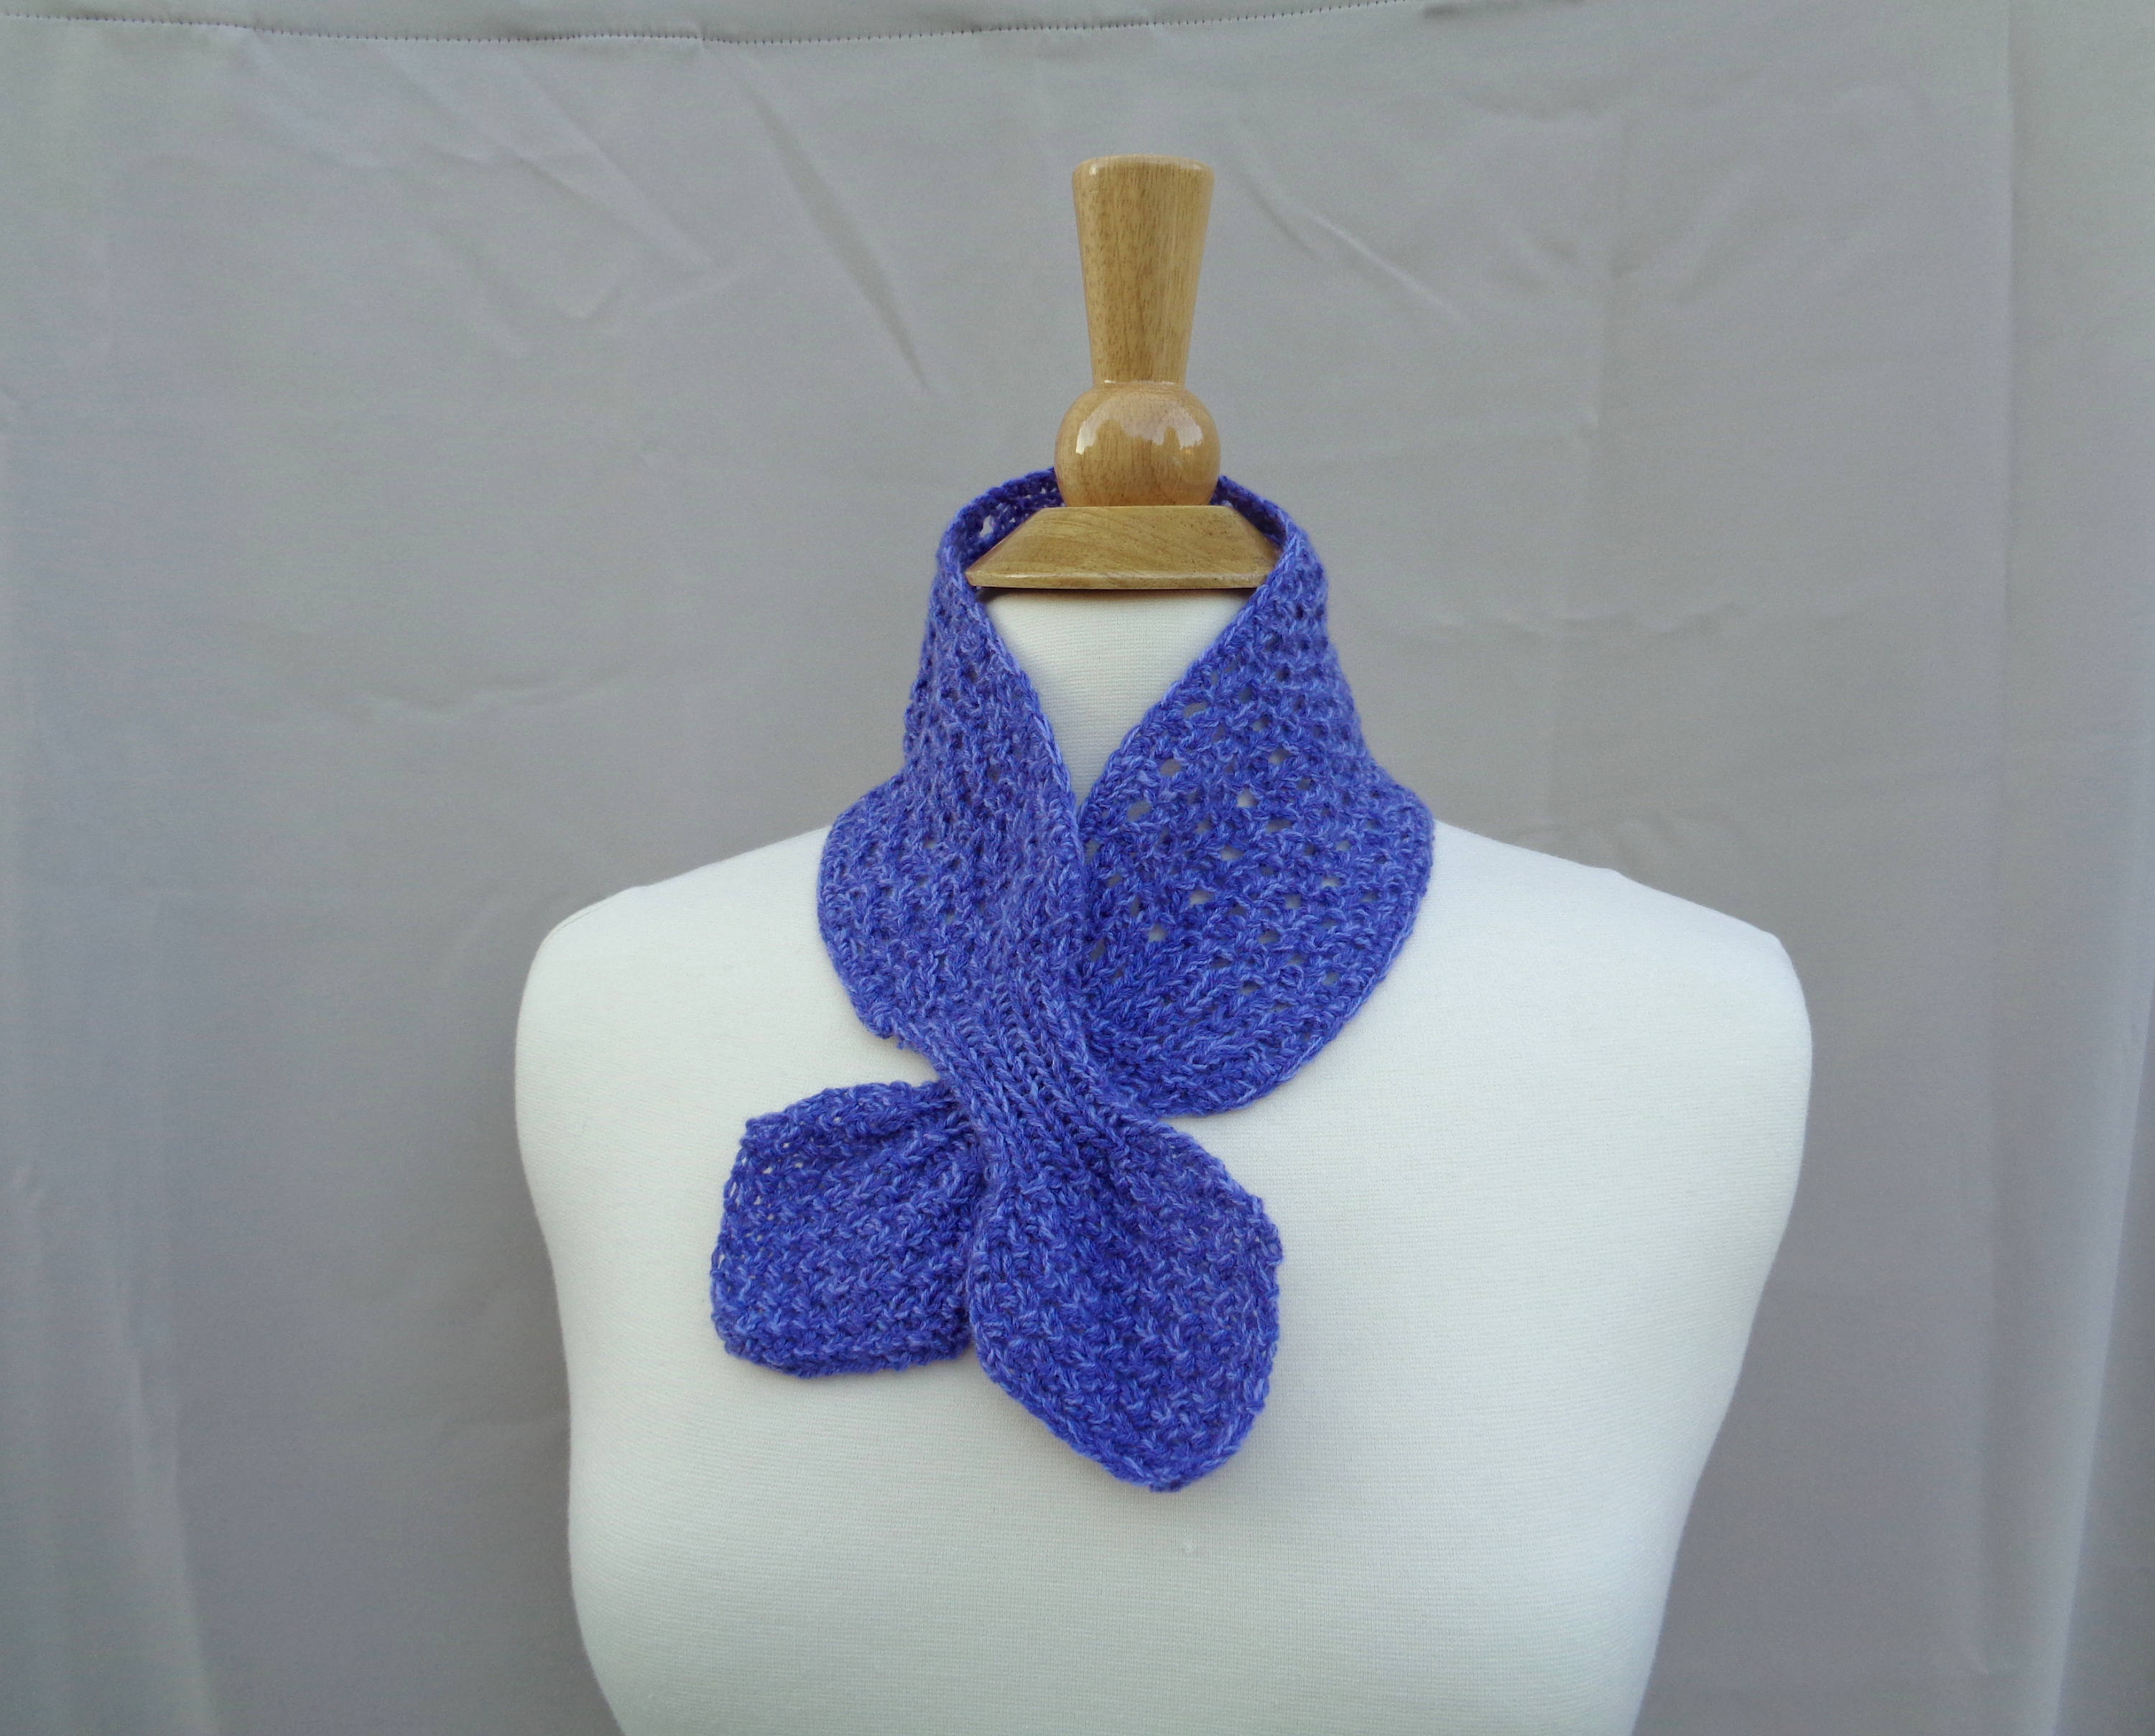 Ascot Scarf Knitting Pattern Cashmere Ascot Scarf Pull Through Keyhole Small Neck Scarf Hand Knit Nec